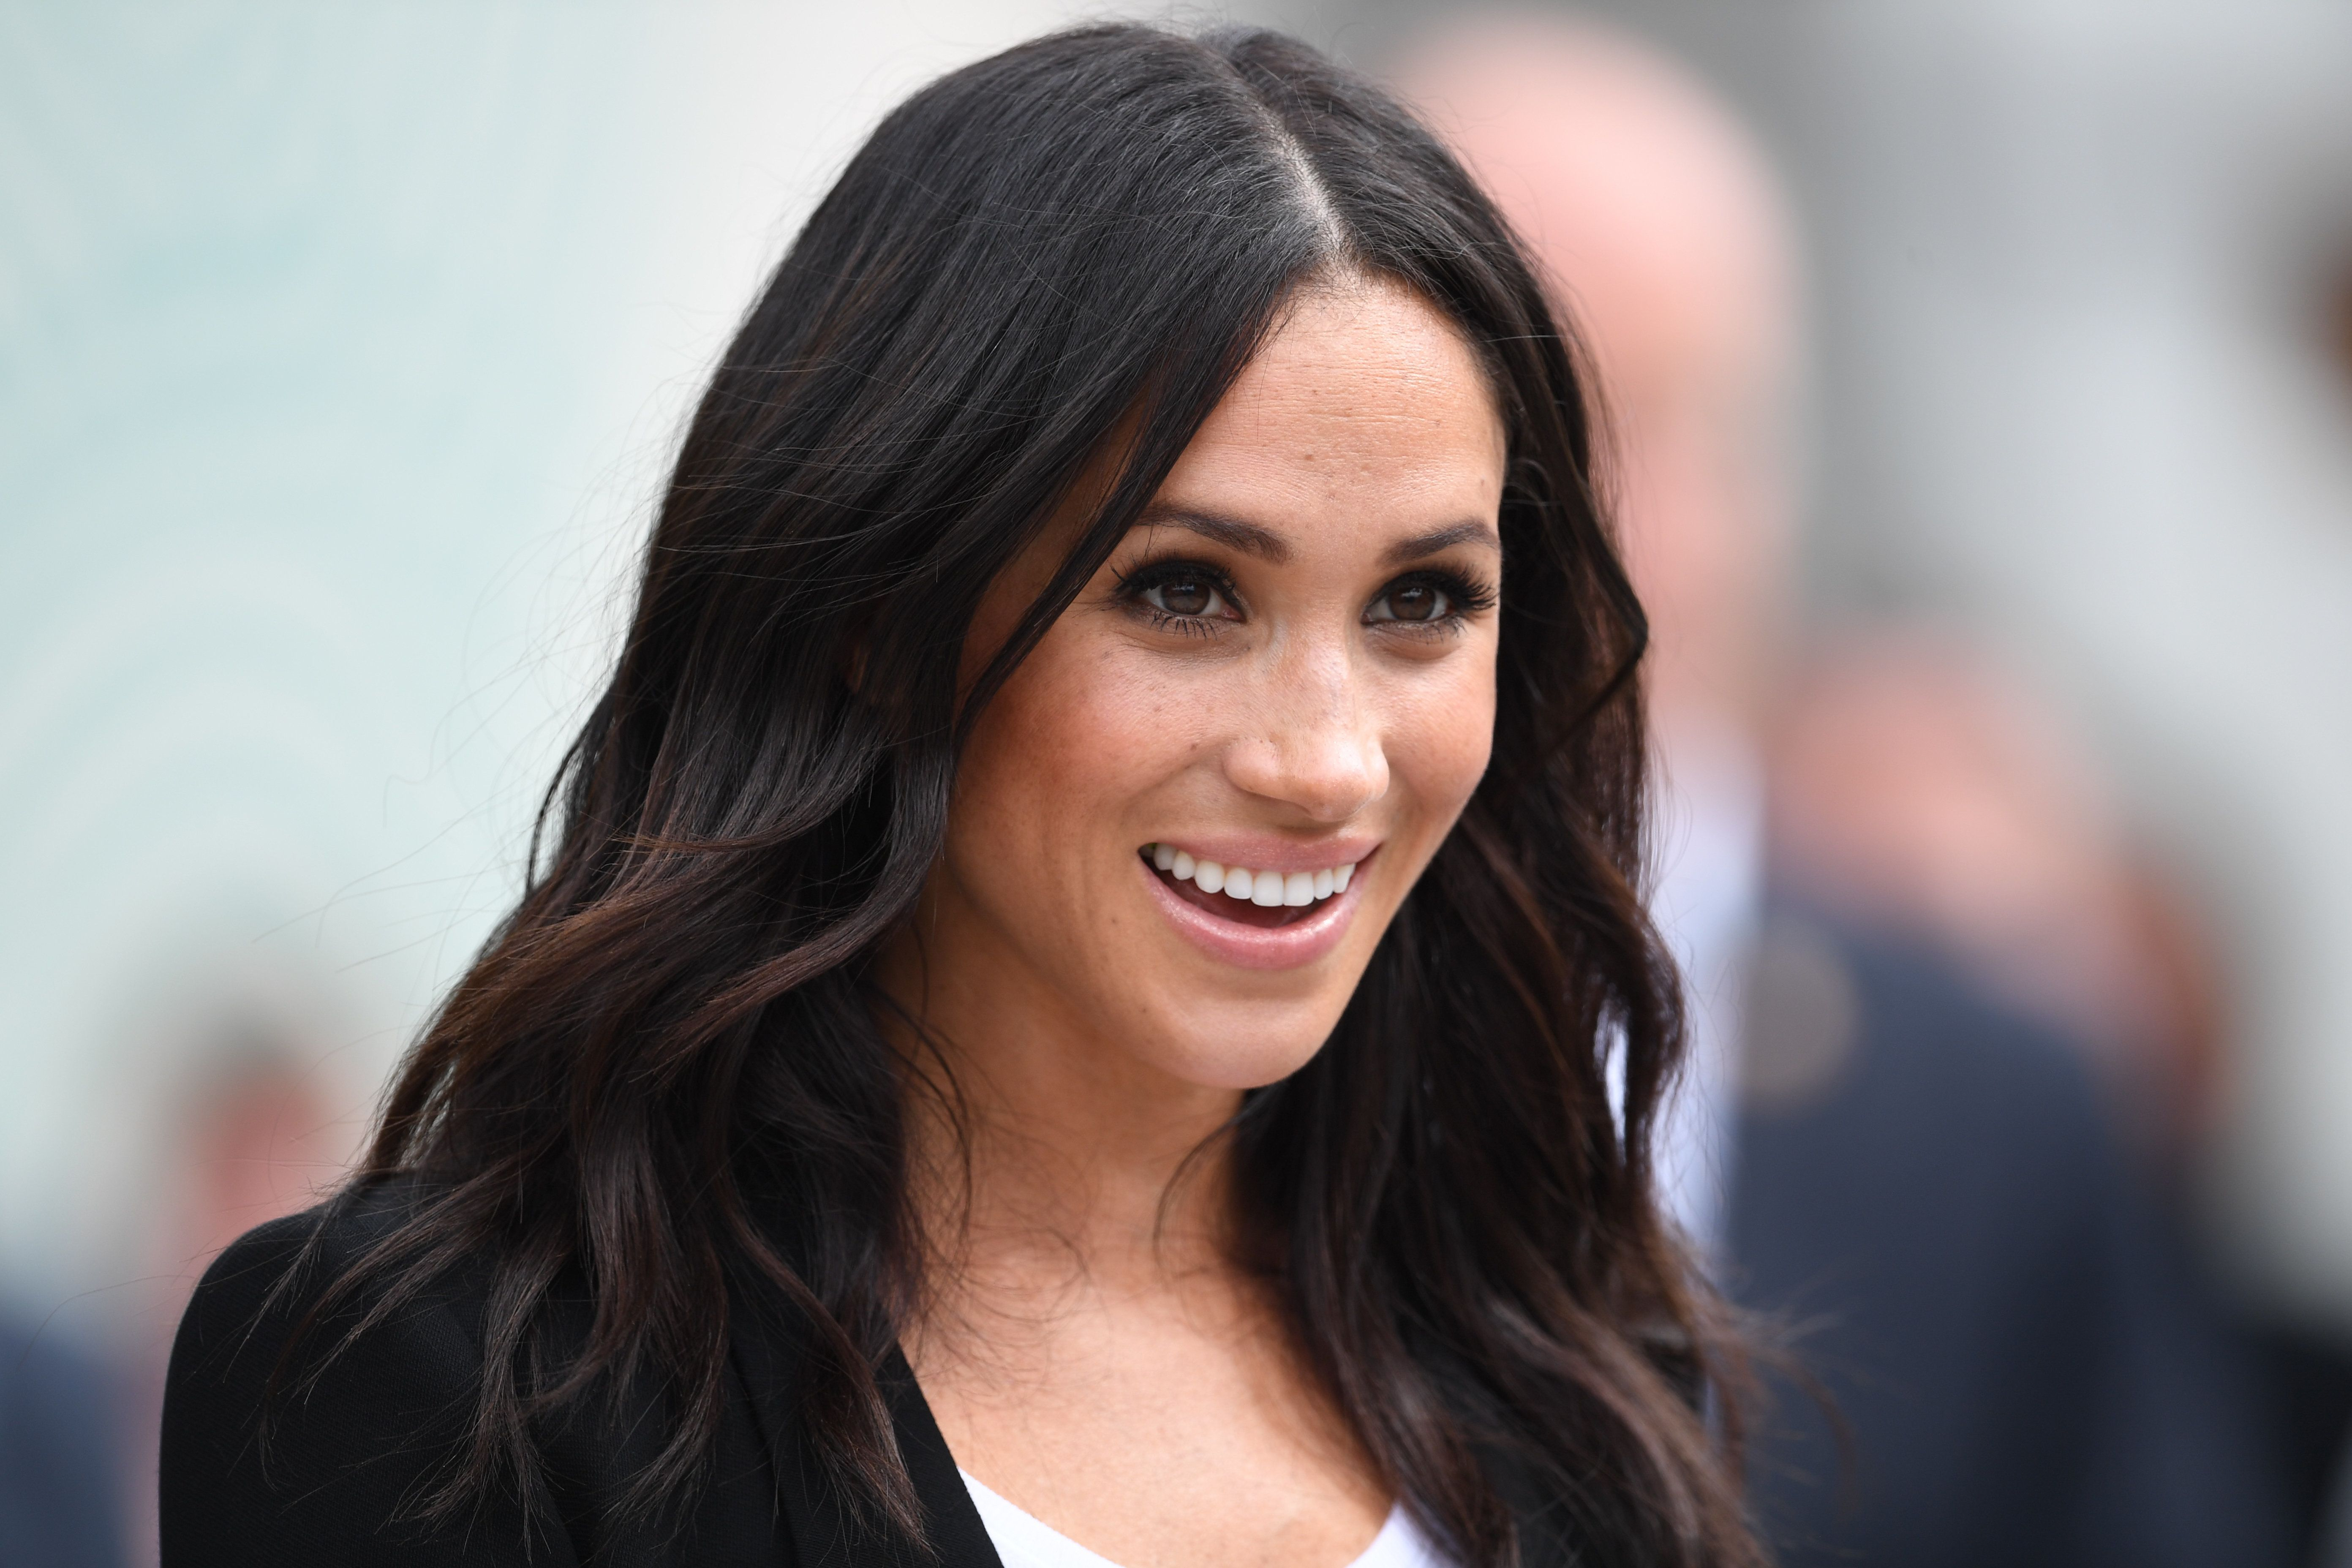 The Duchess of Sussex pictured during her visit to Dublin, Ireland on July 11.